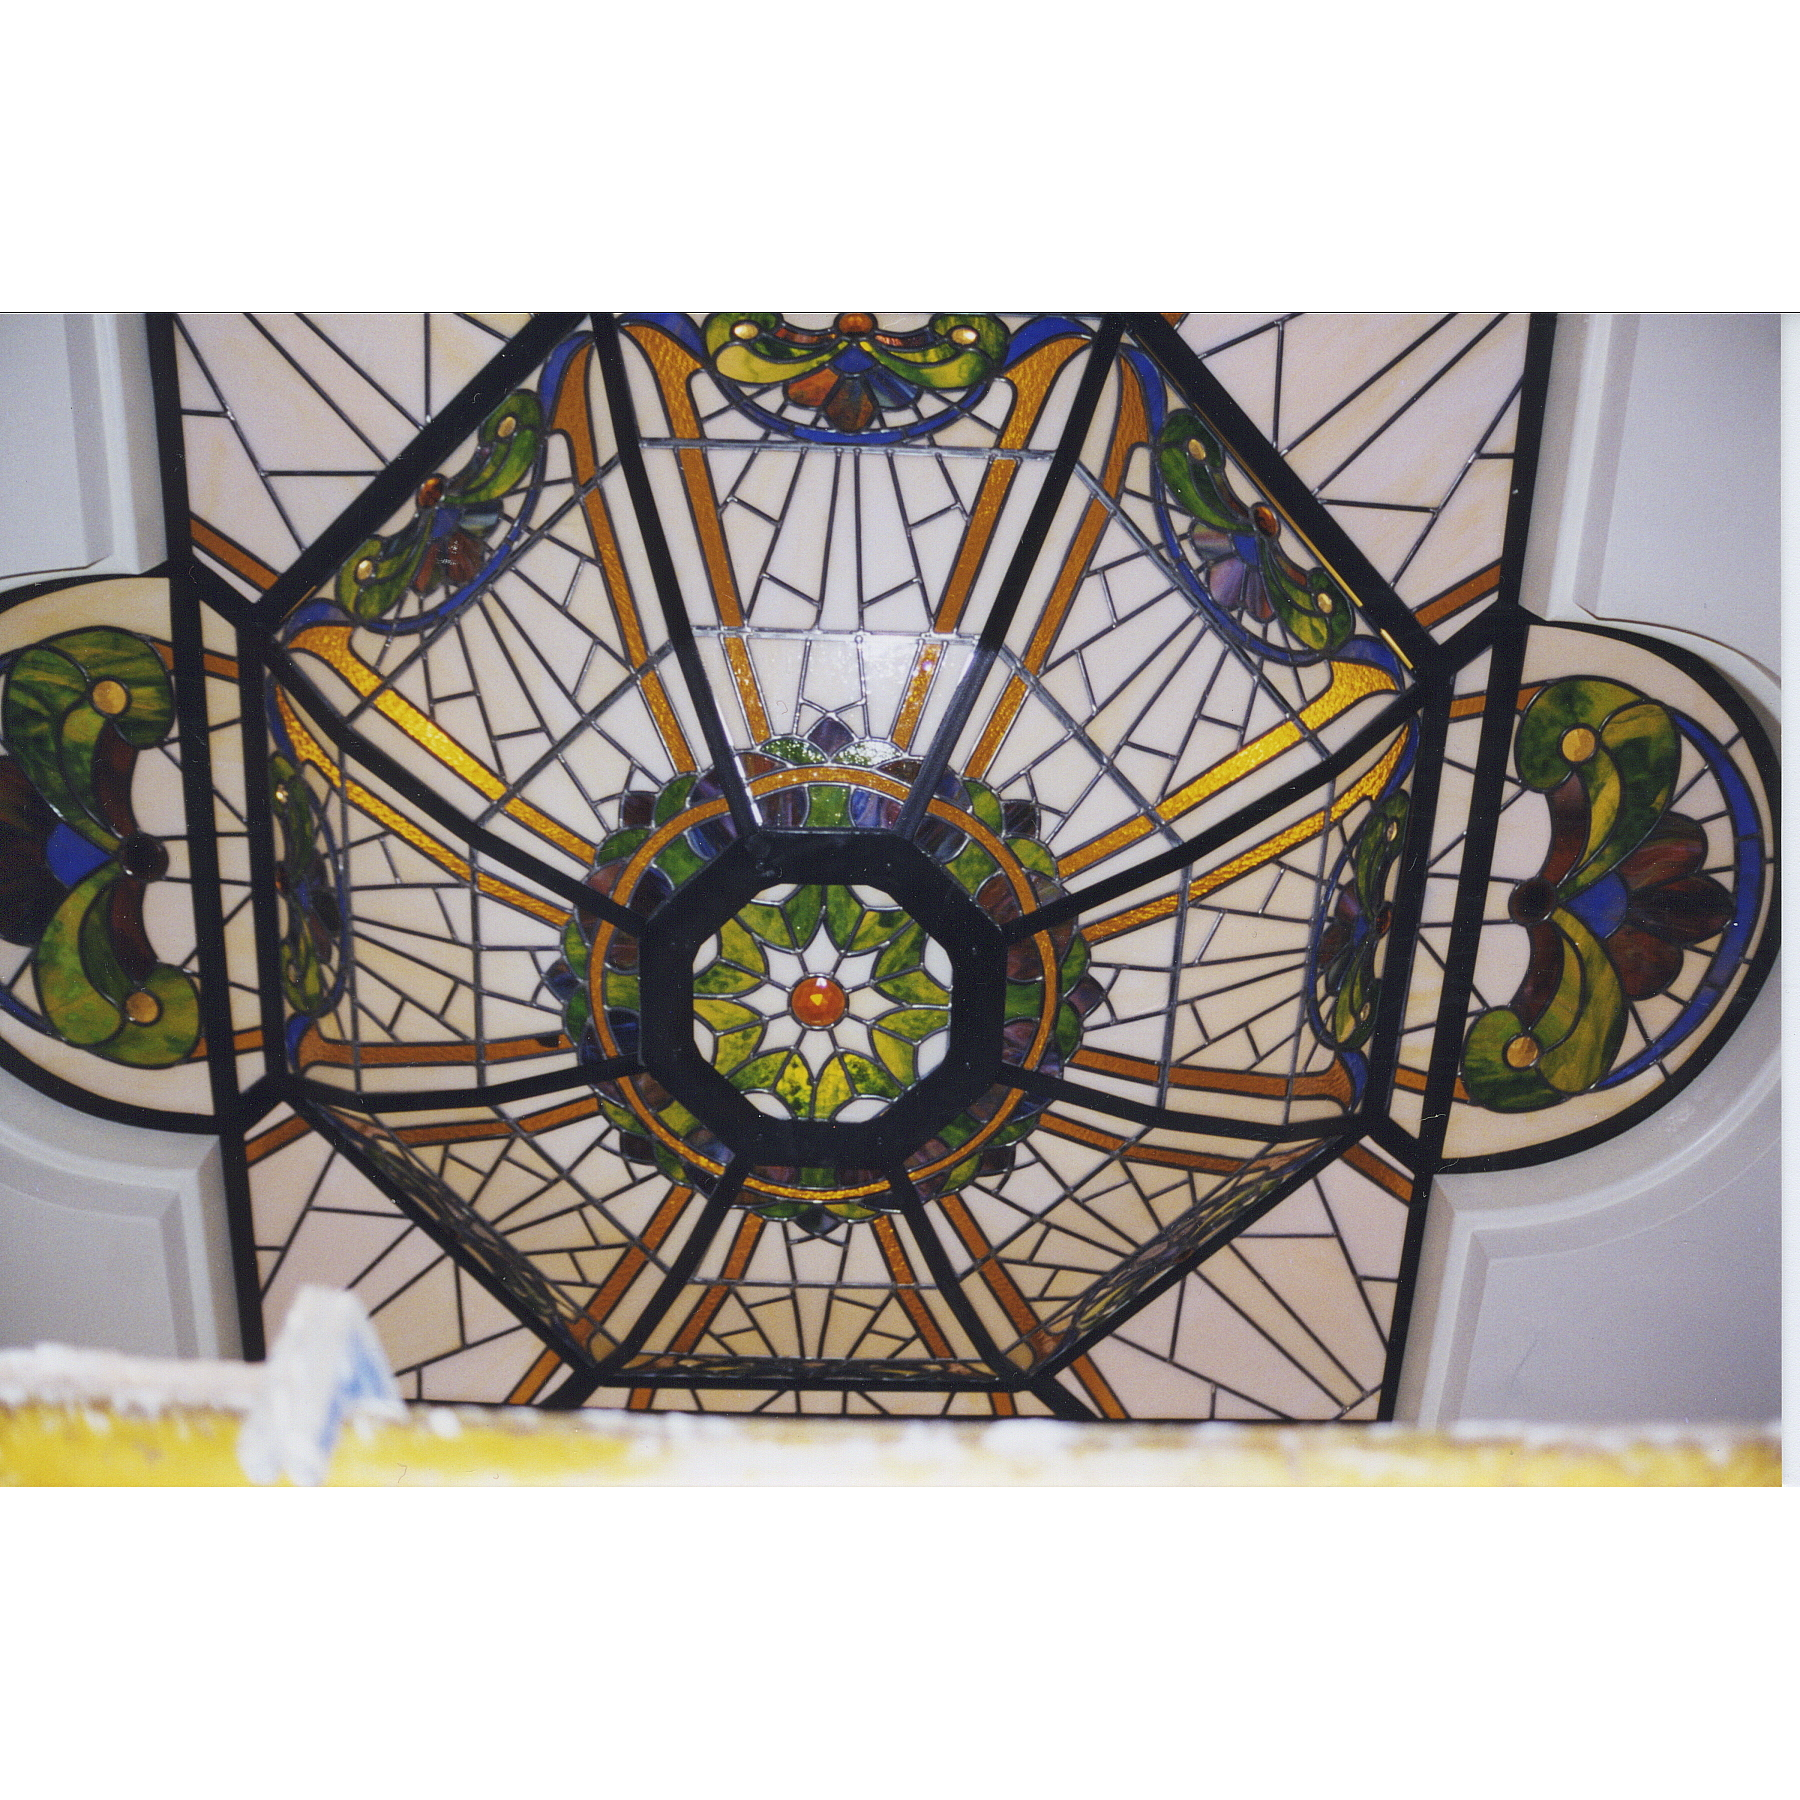 Susan's Stained Glass Creations